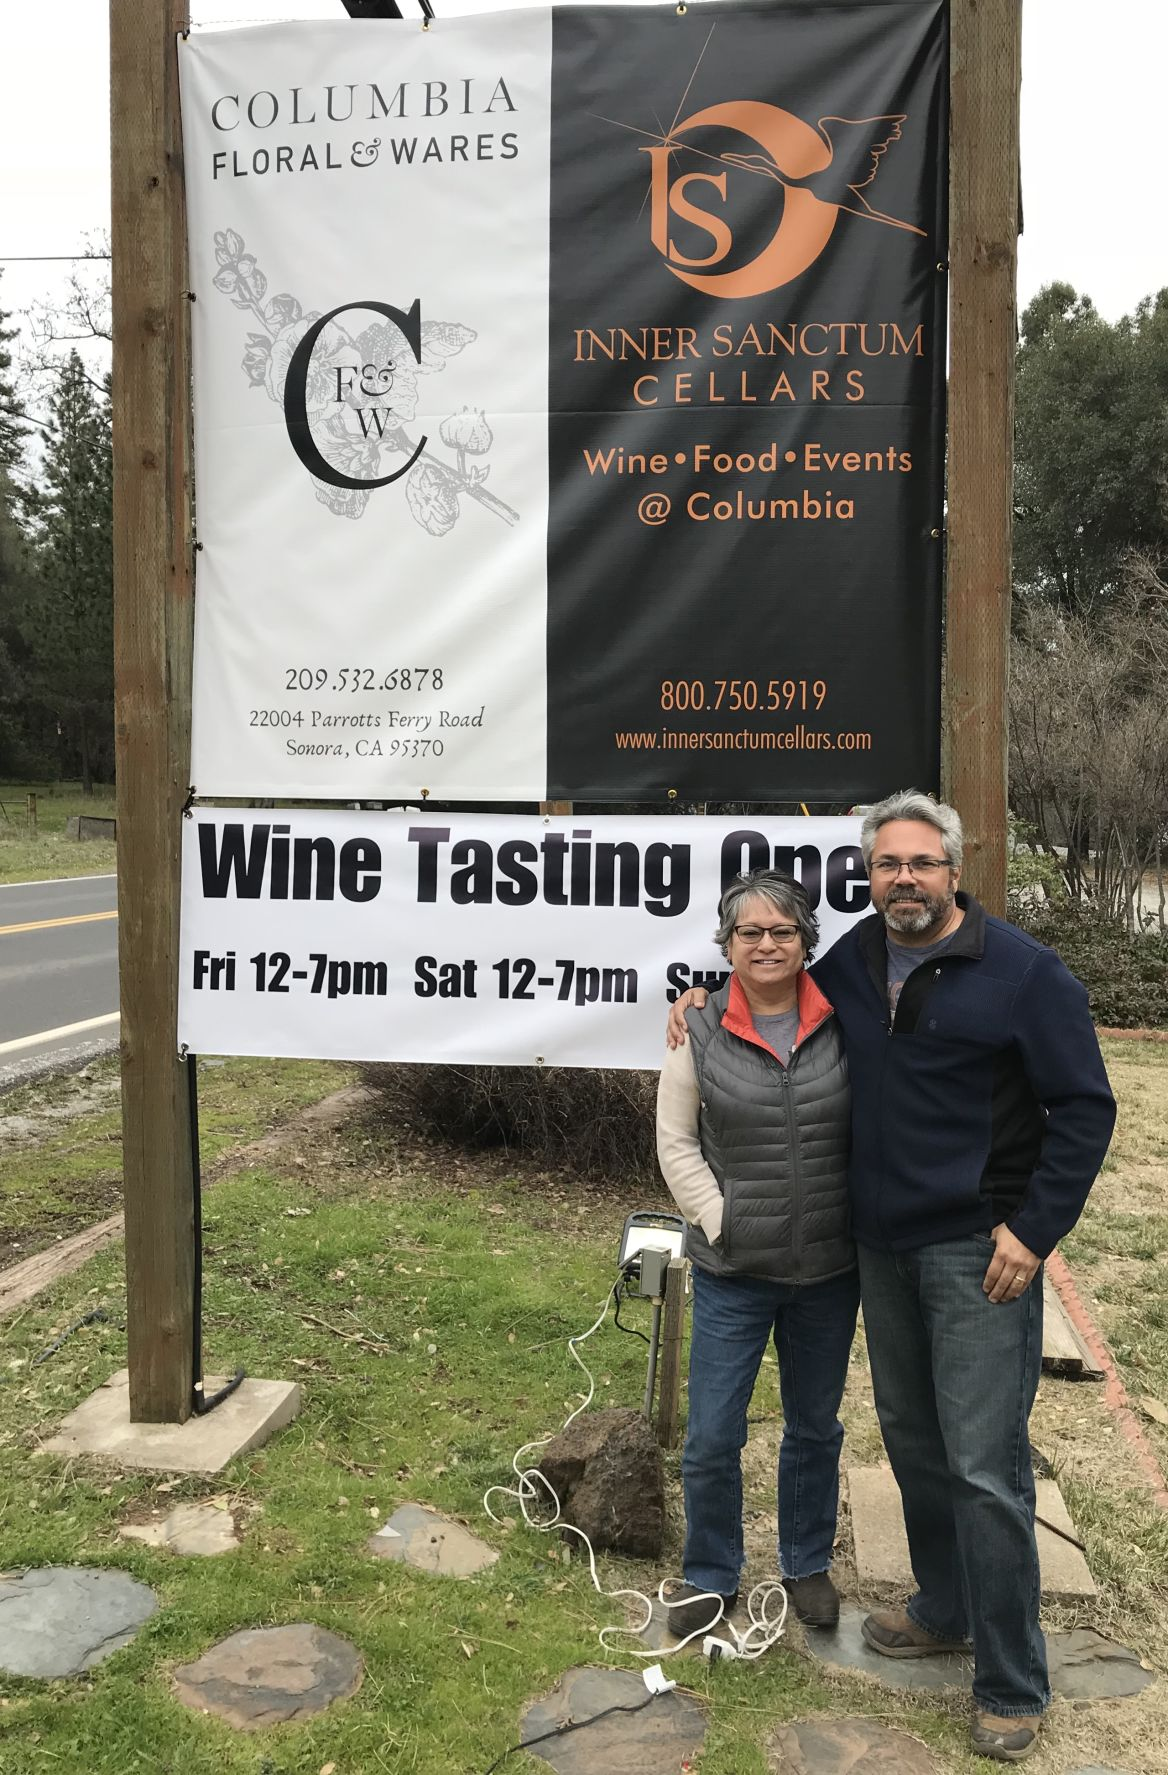 New players and tasting opportunities have sprouted